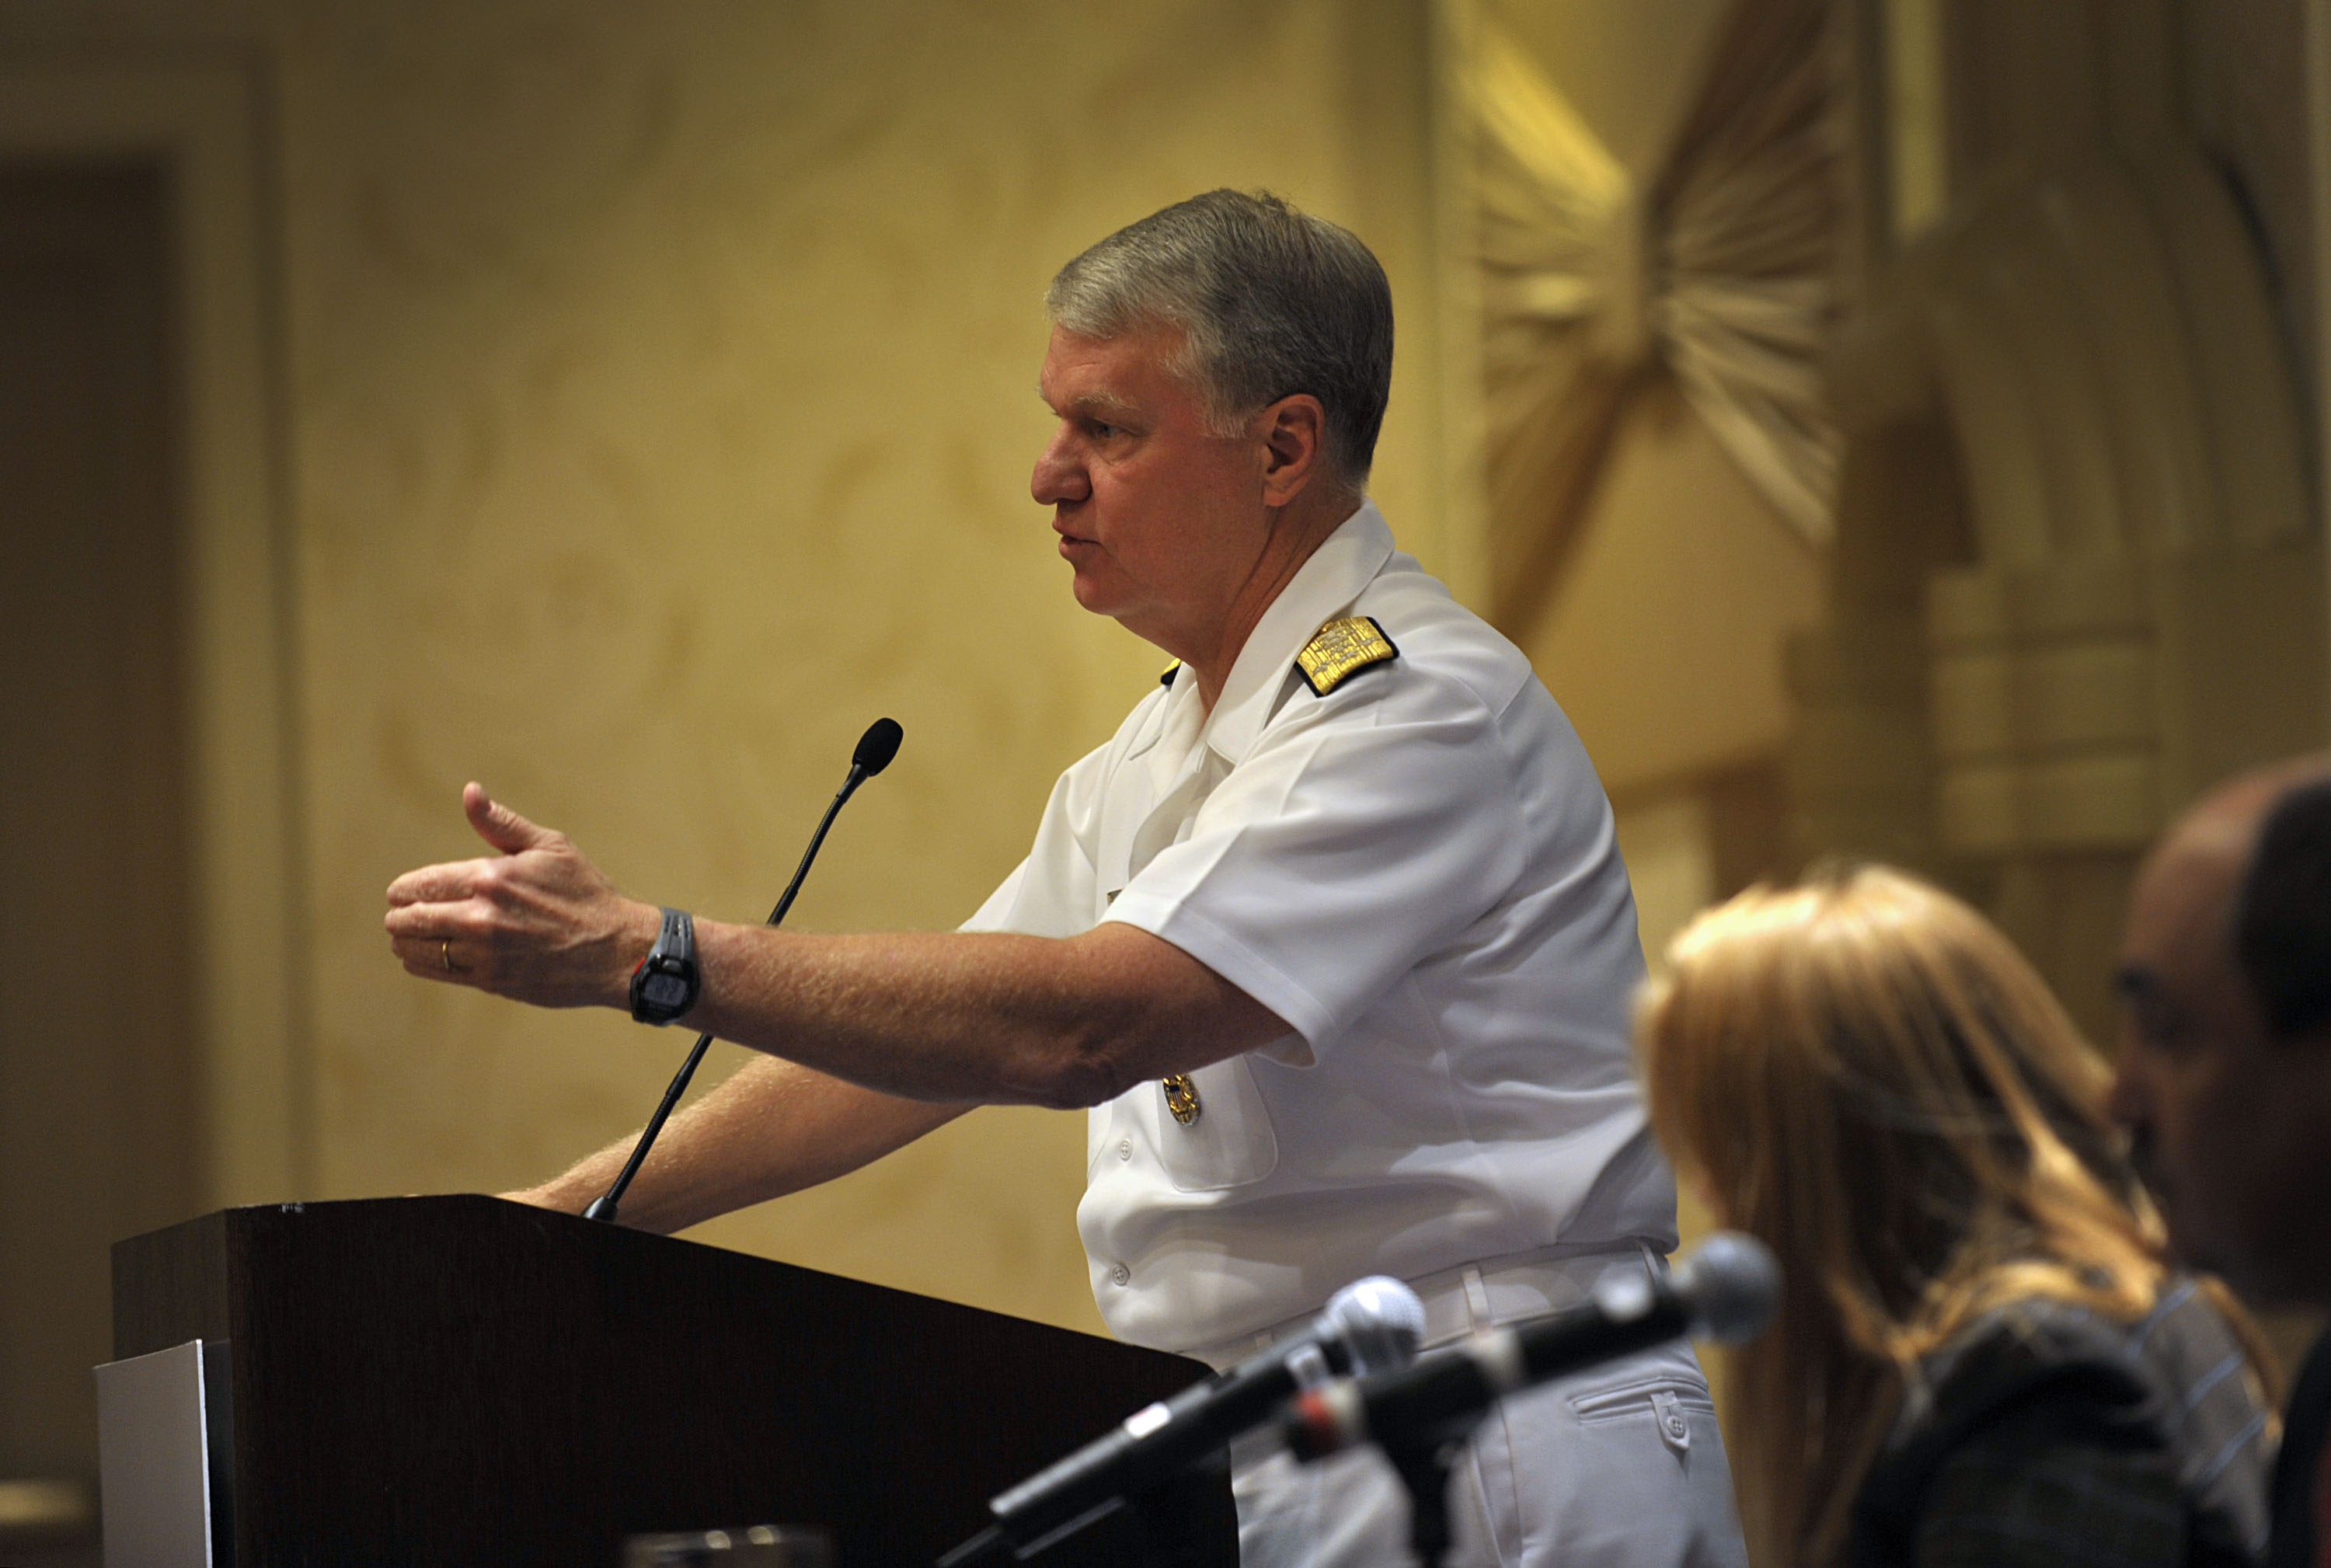 File:US Navy 091001-N-8273J-153 Chief of Naval Operations